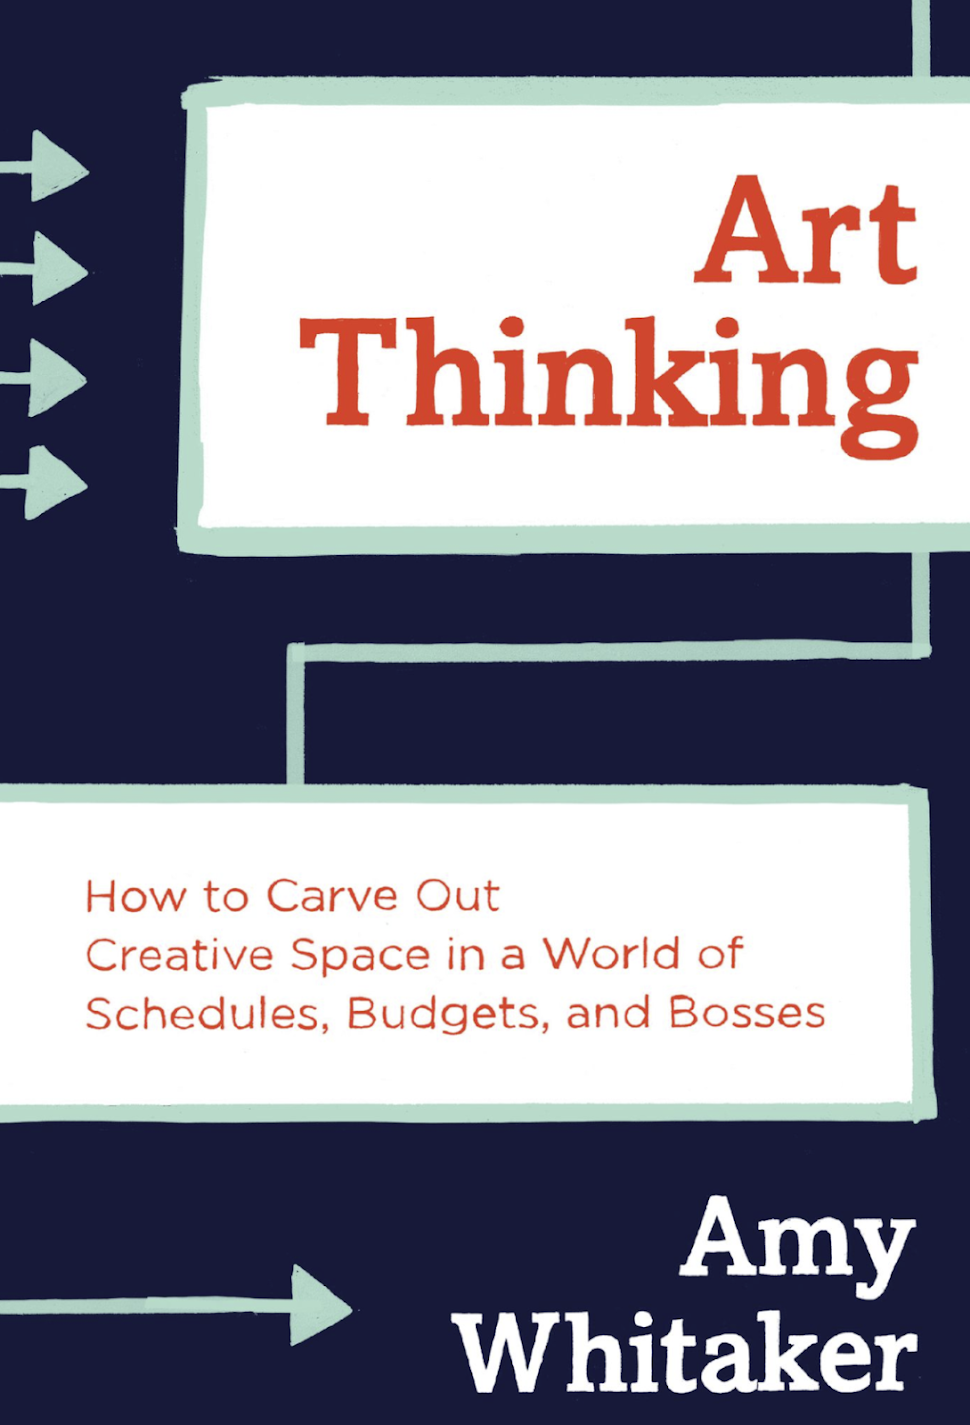 Art Thinking - How to Carve Out Creative Space in a World of Schedules, Budgets, and Bosses by Amy Whitaker